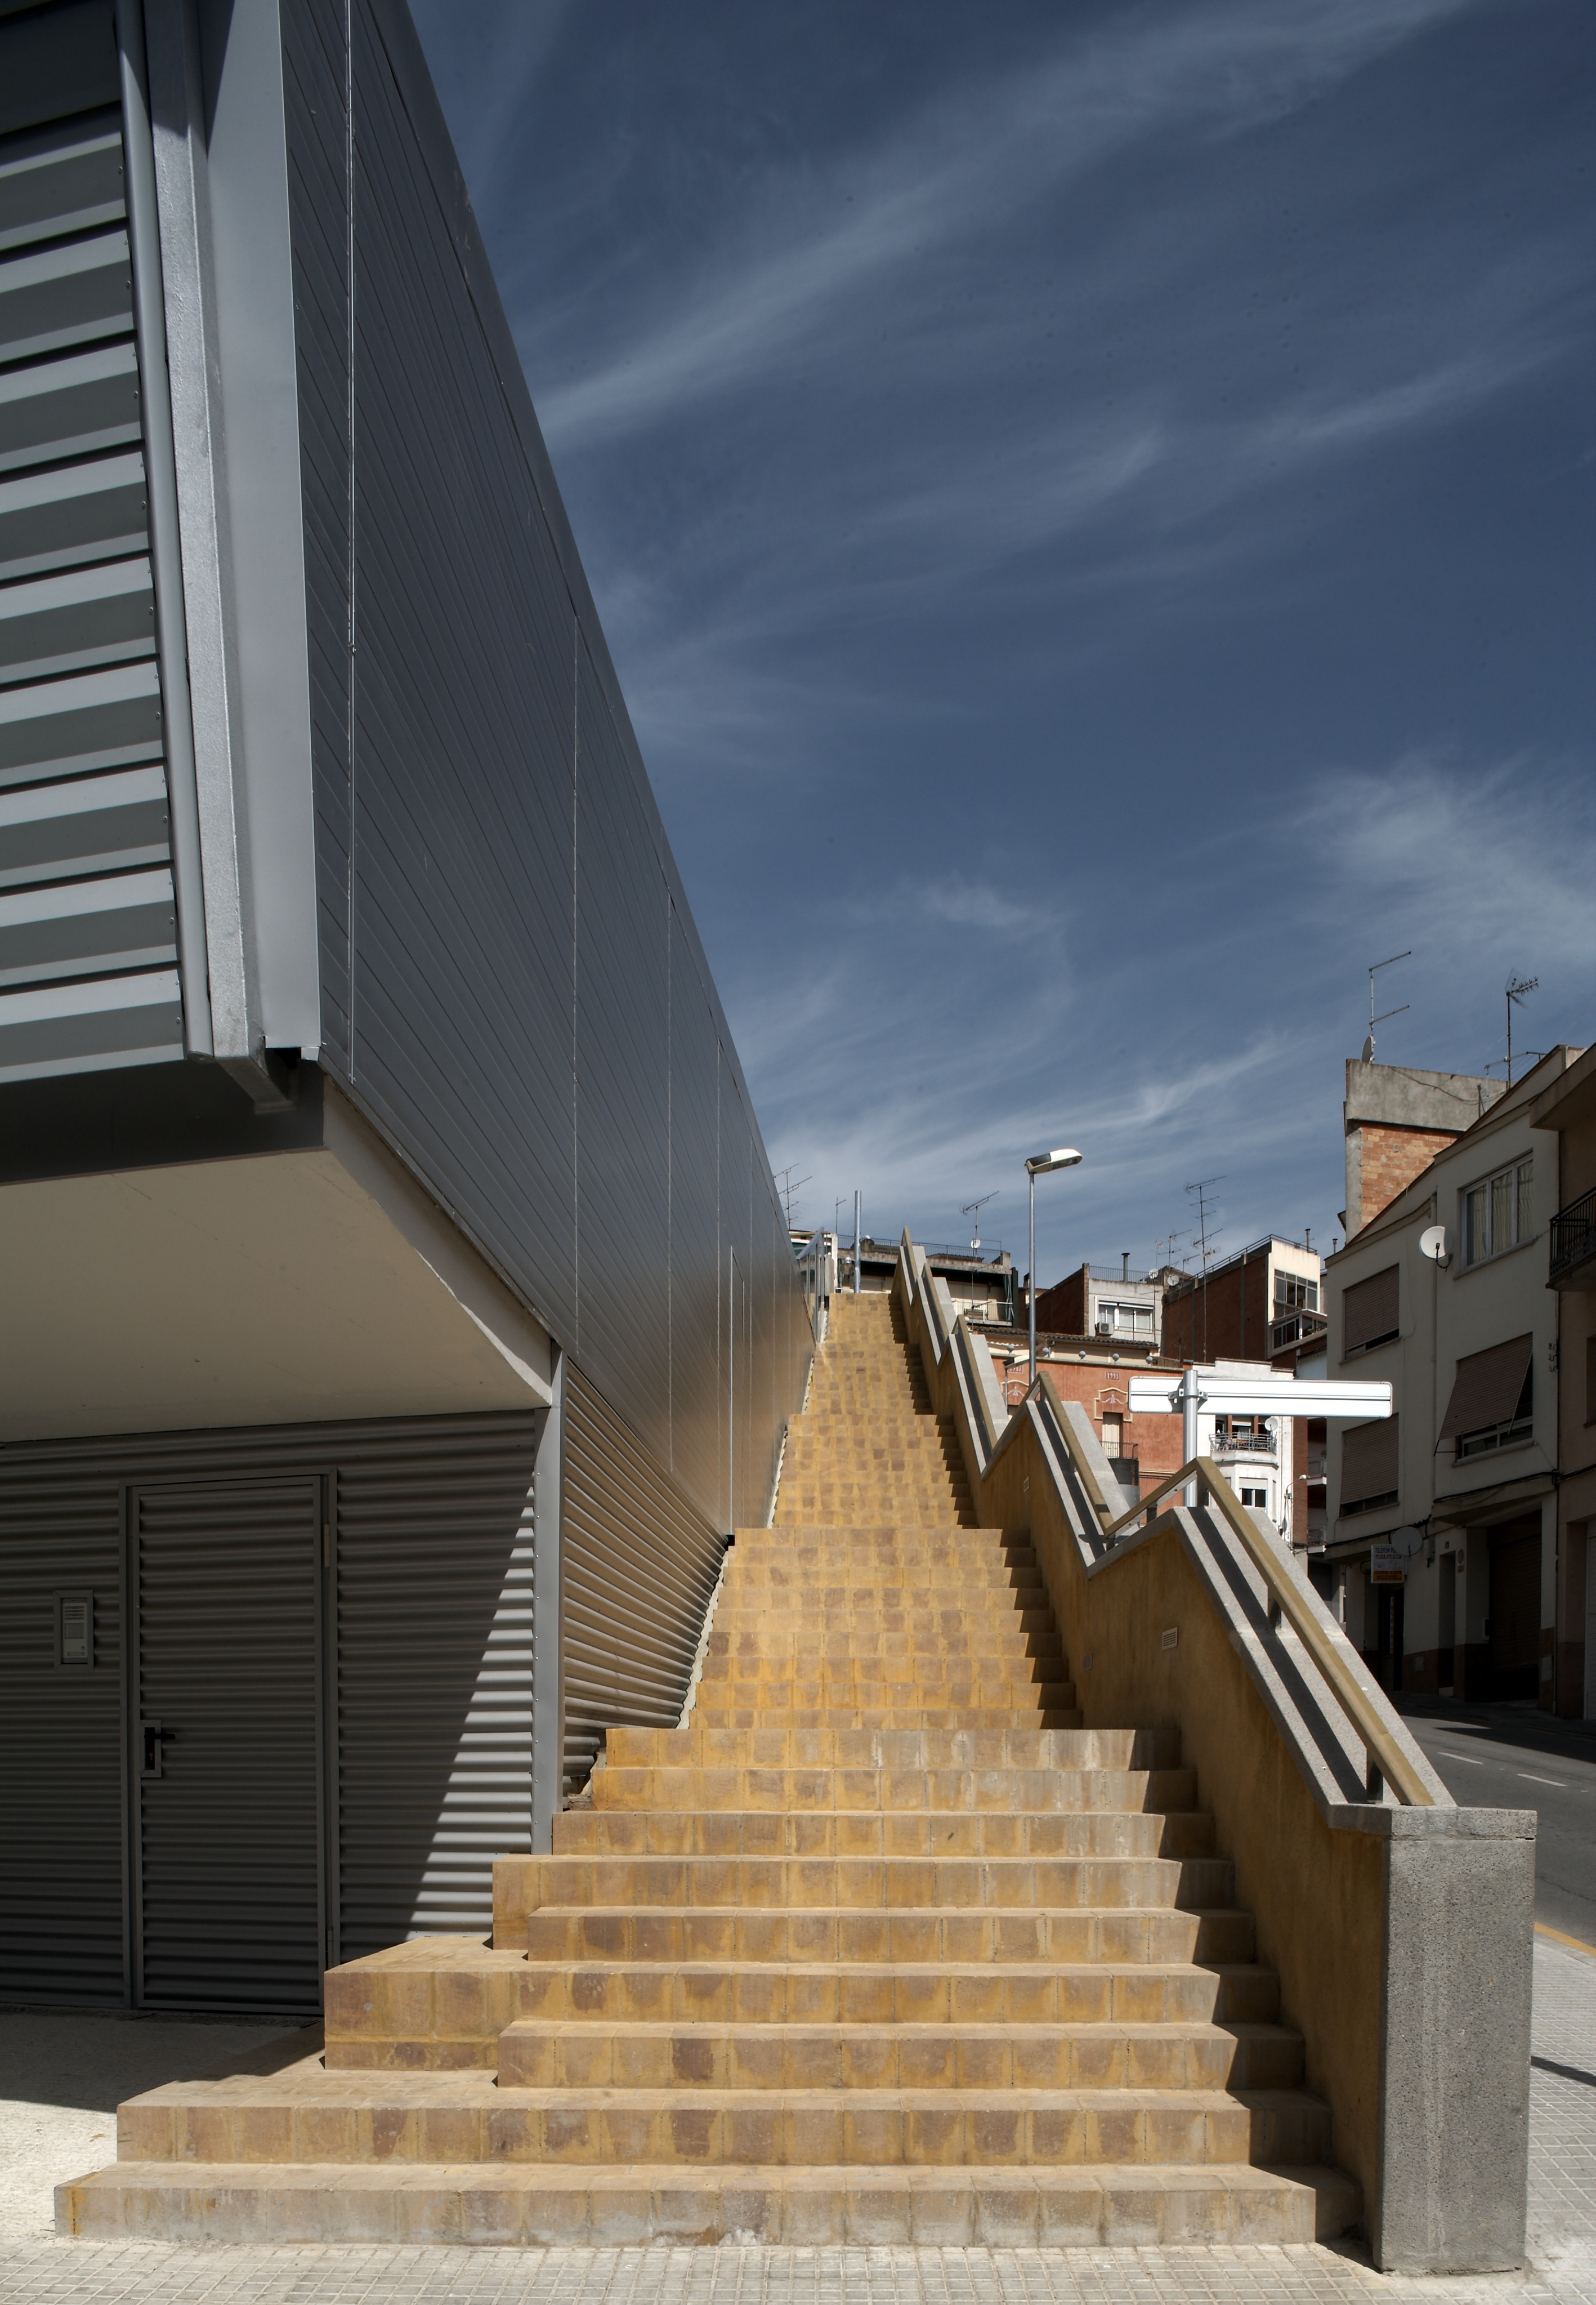 f03_escaleras ext.jpg